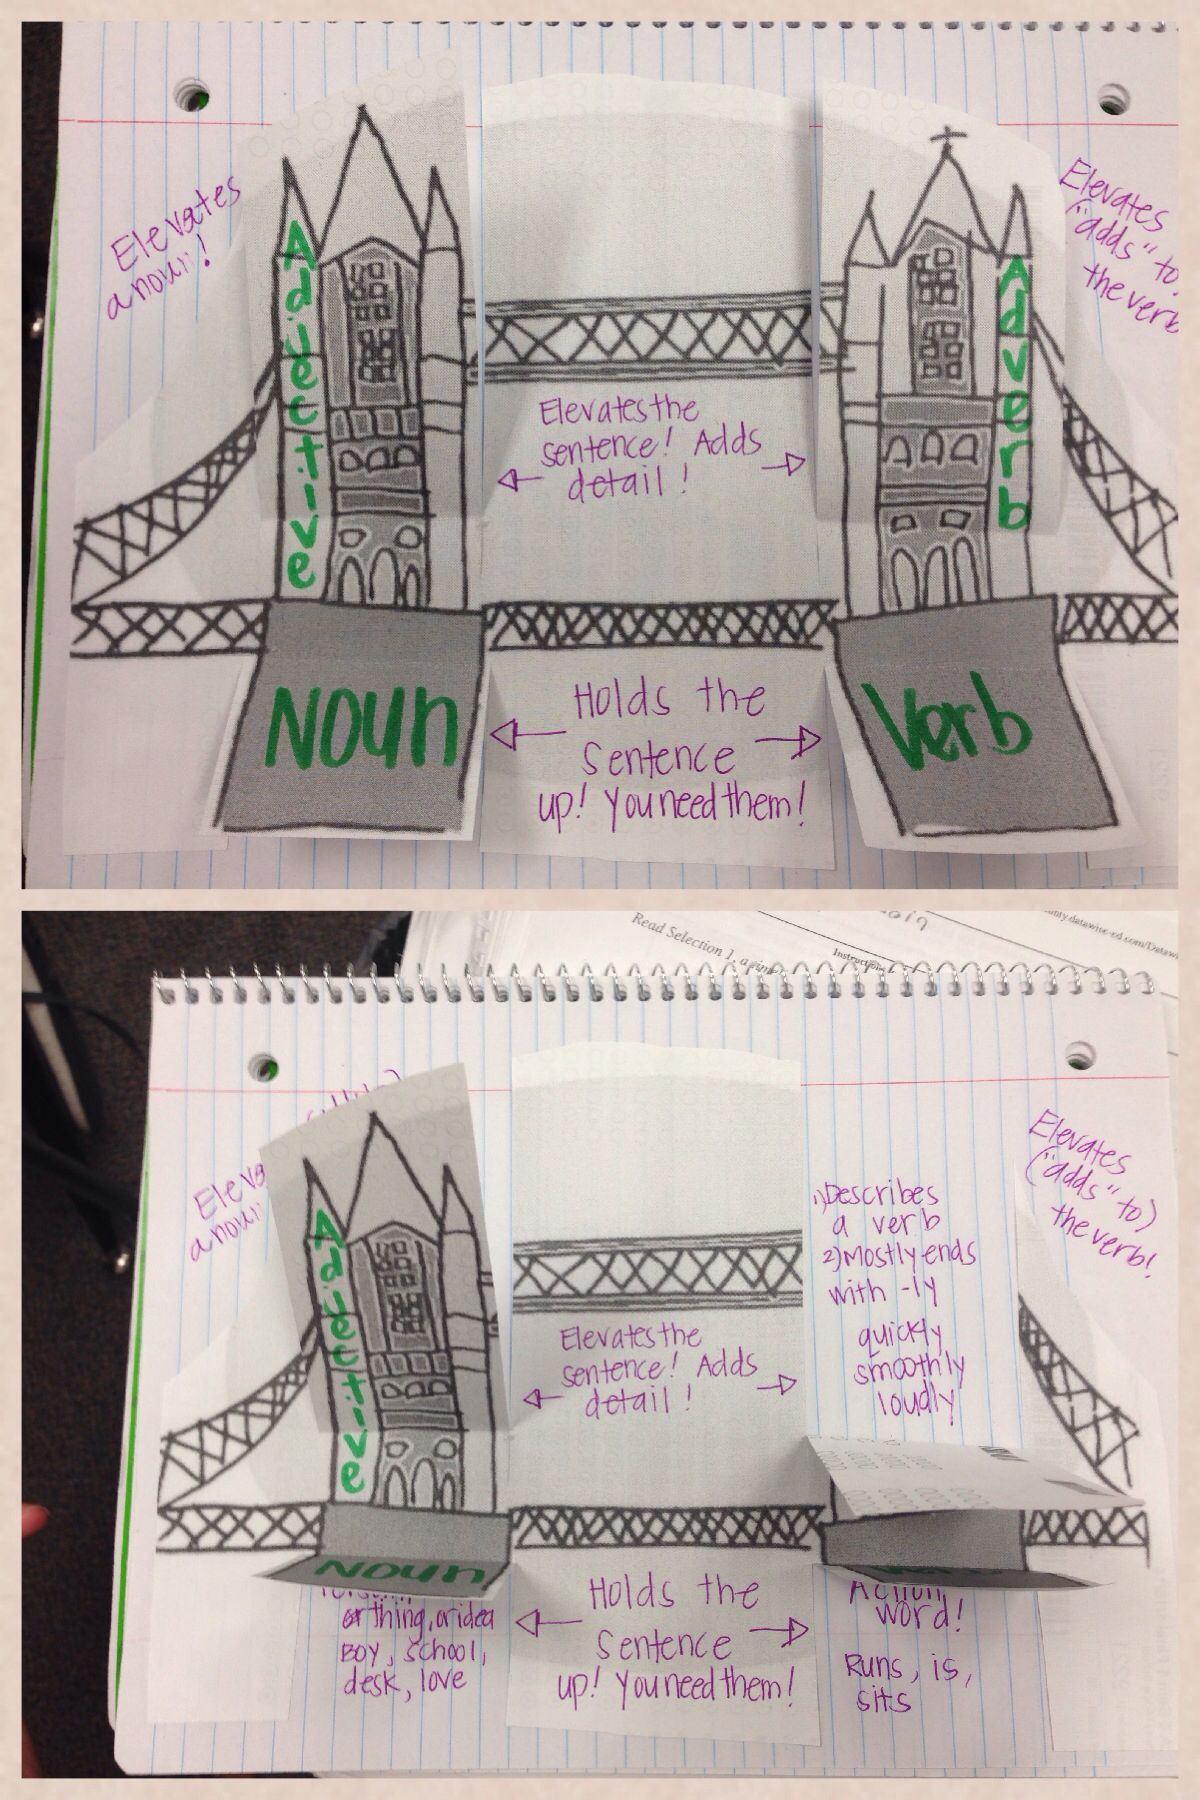 Foldable For Basic Parts Of Speech Helps Students